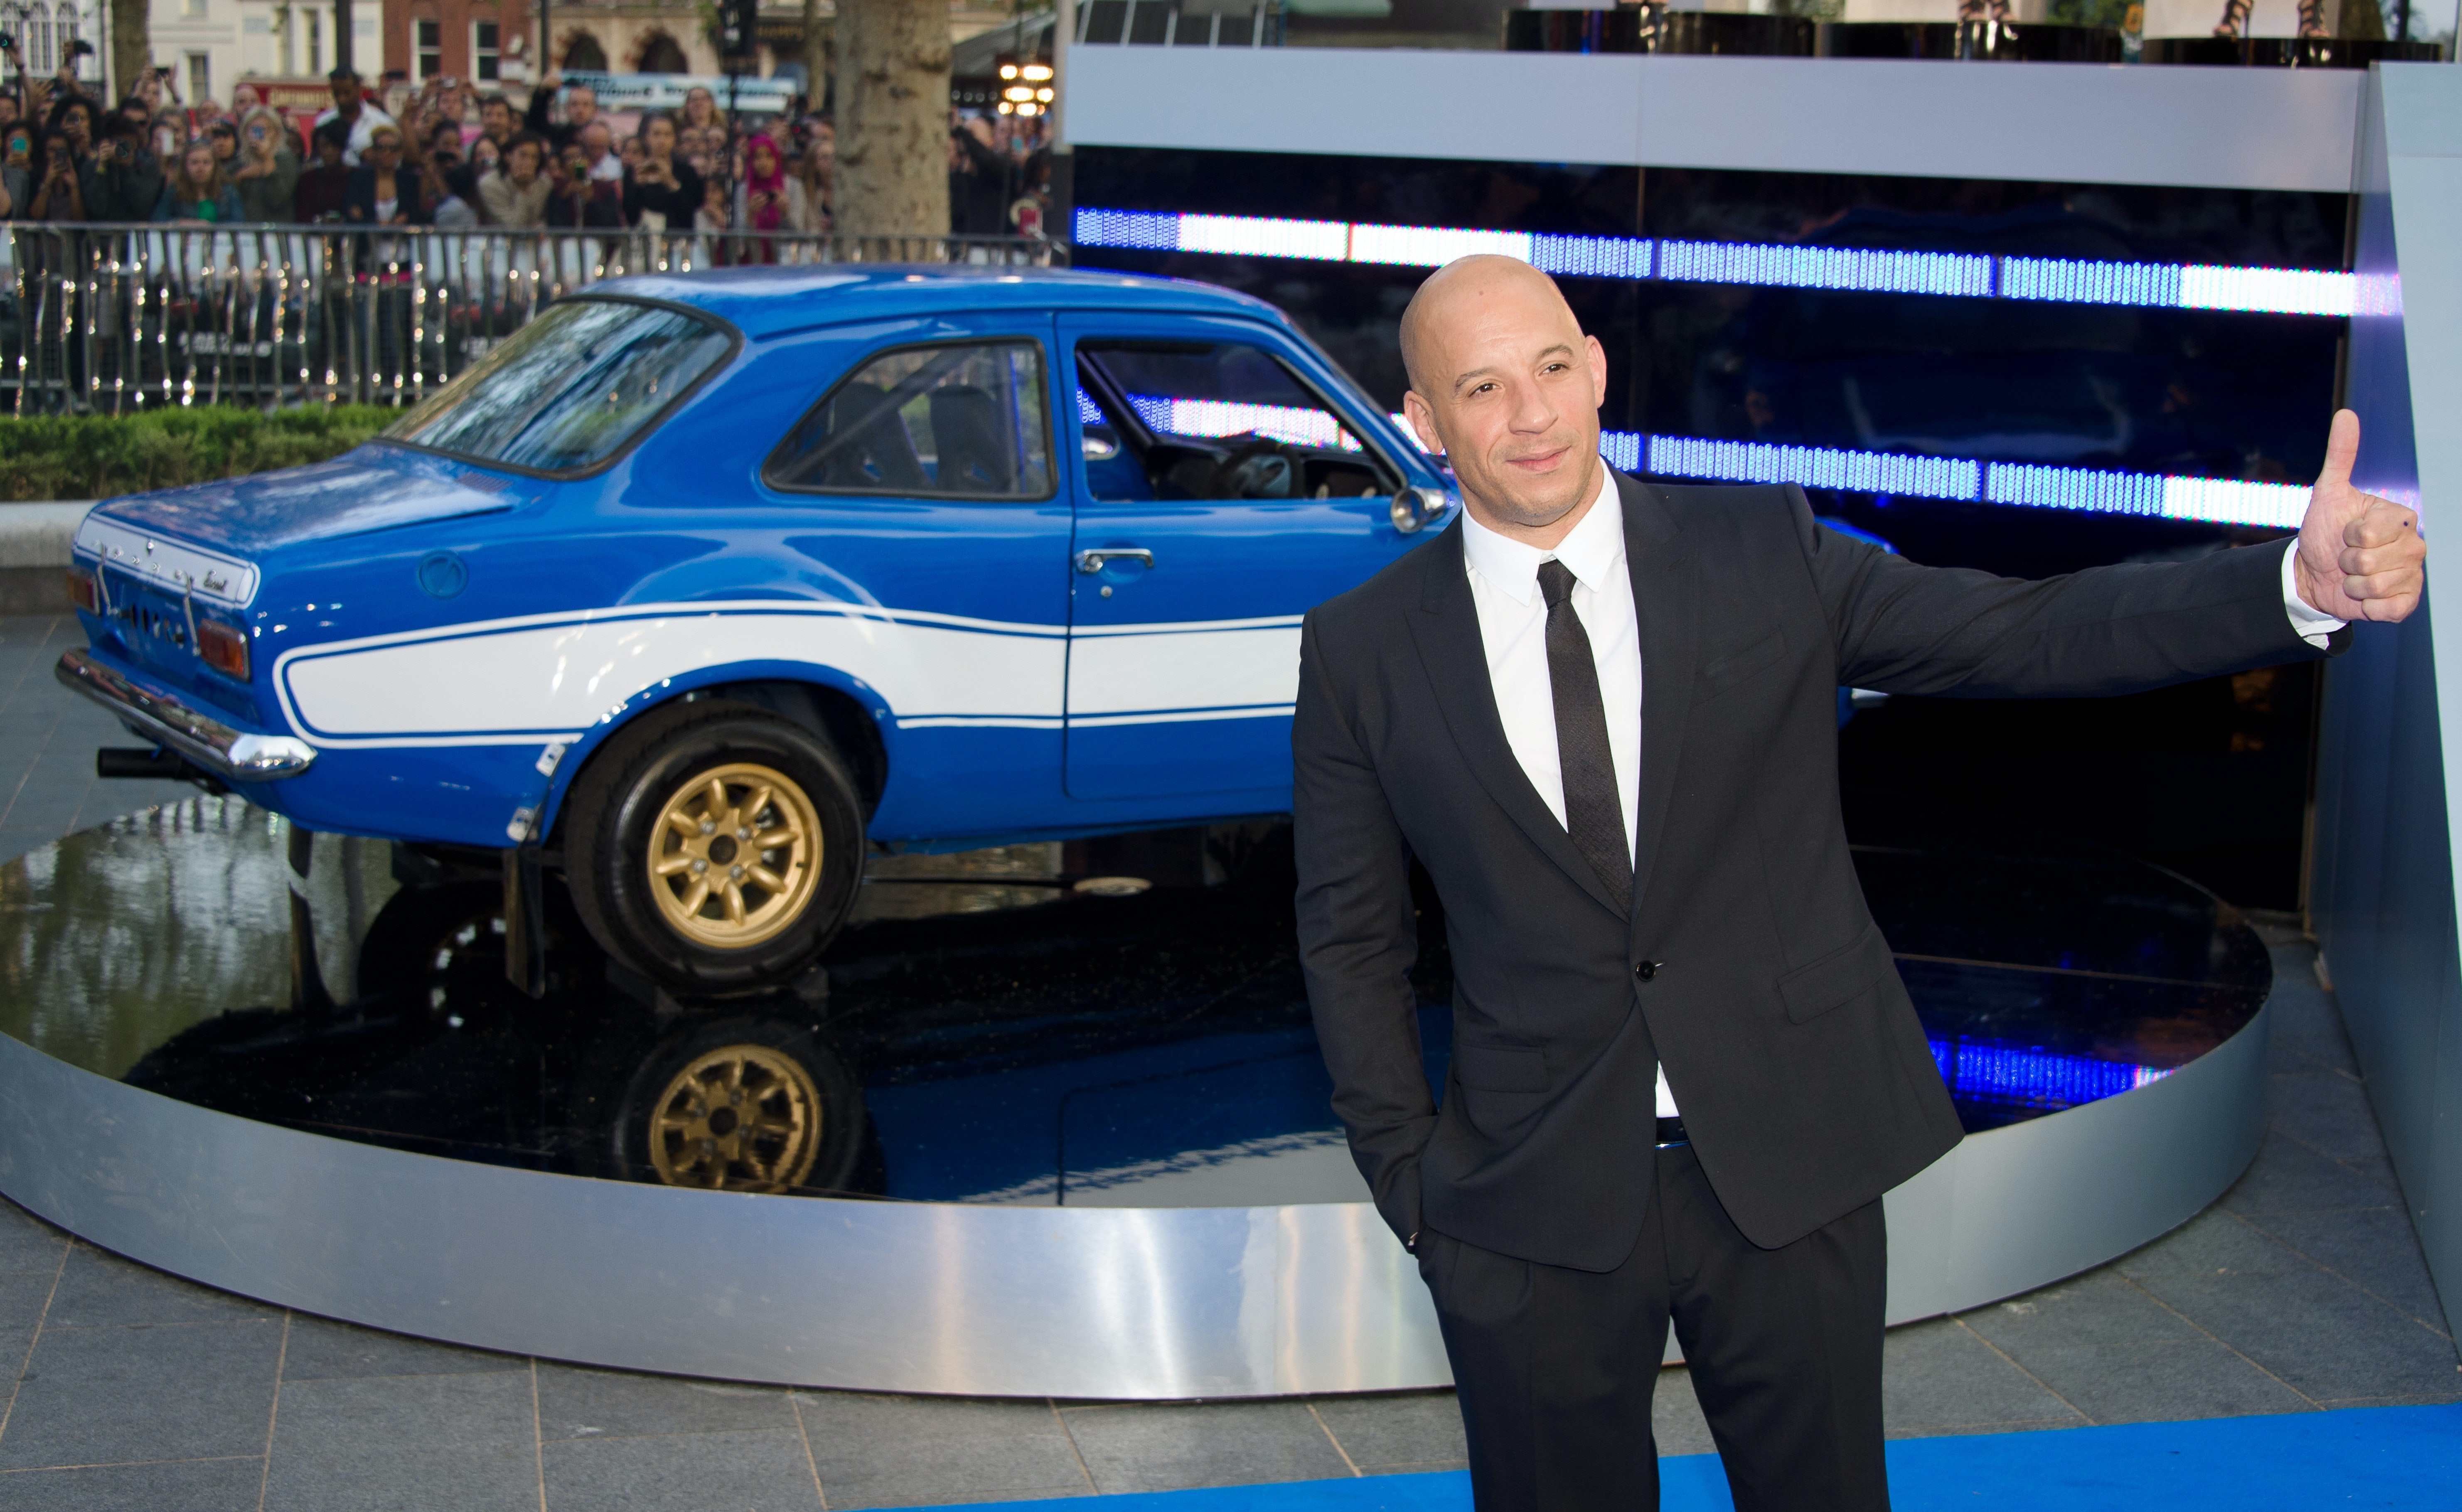 fast and furious 8 free download movie